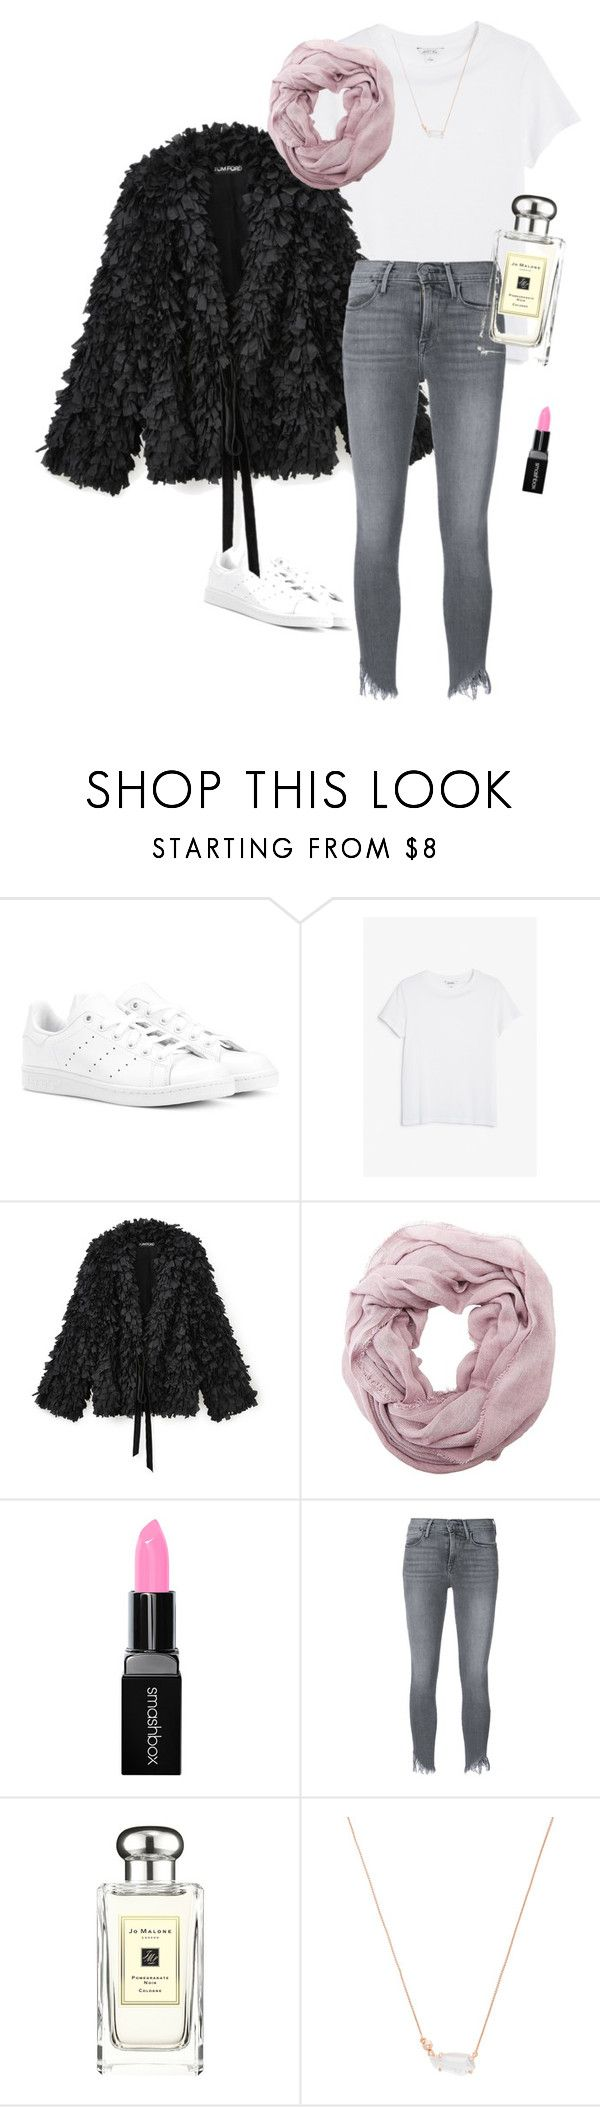 Monday by christinereskovich on Polyvore featuring Monki, Frame, adidas Originals, Kendra Scott, Charlotte Russe, Smashbox and Jo Malone